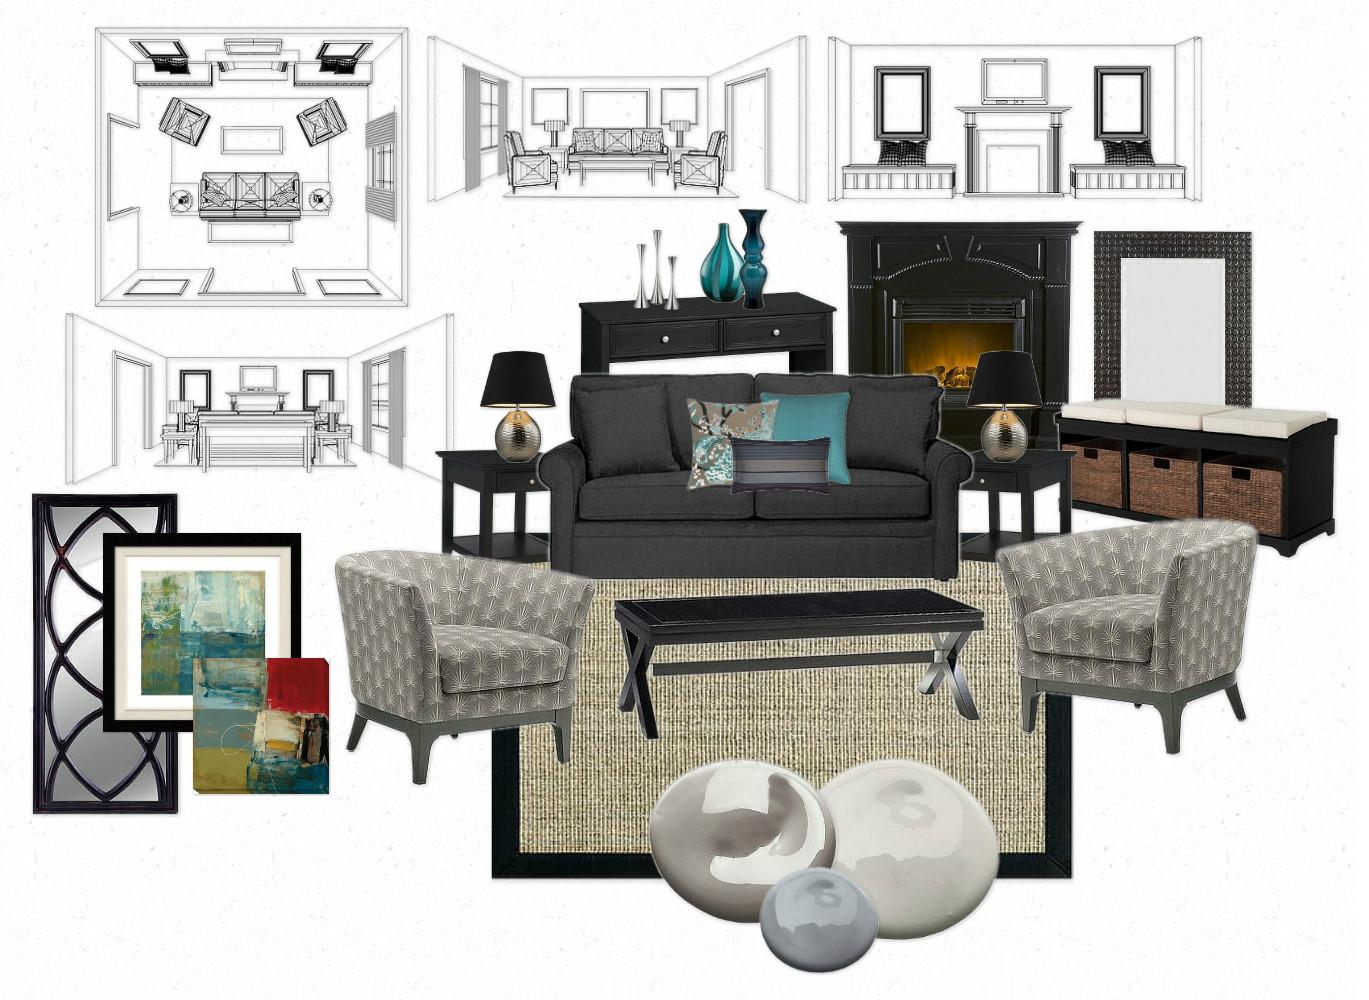 Delightful Home Design Vision Board Part - 1: Newnan Interior Design U2013 Design Vision Boards For 2012!